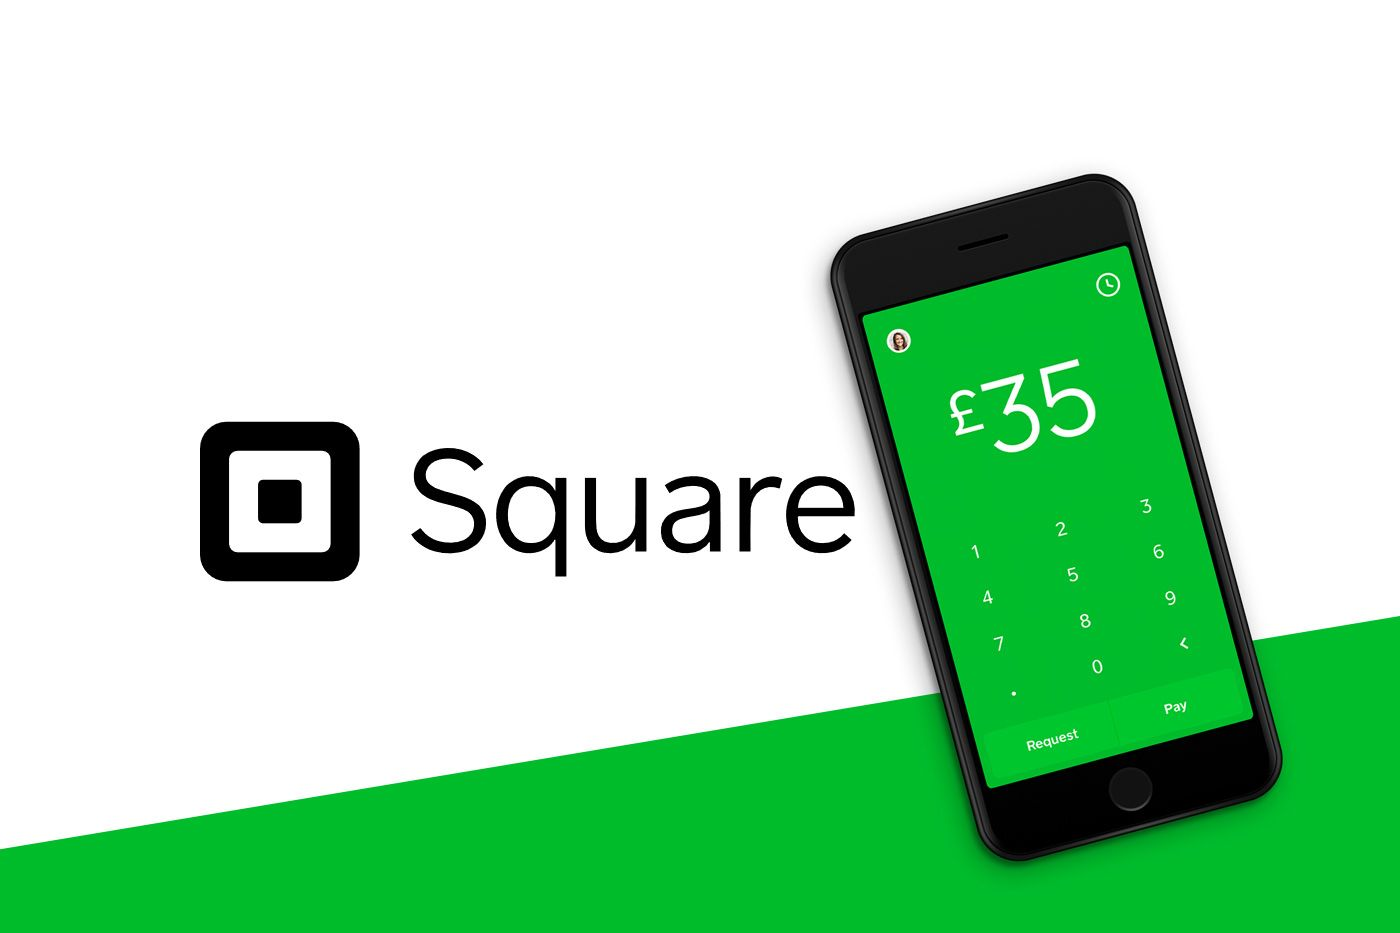 To online transaction with Square Cash App is very easy